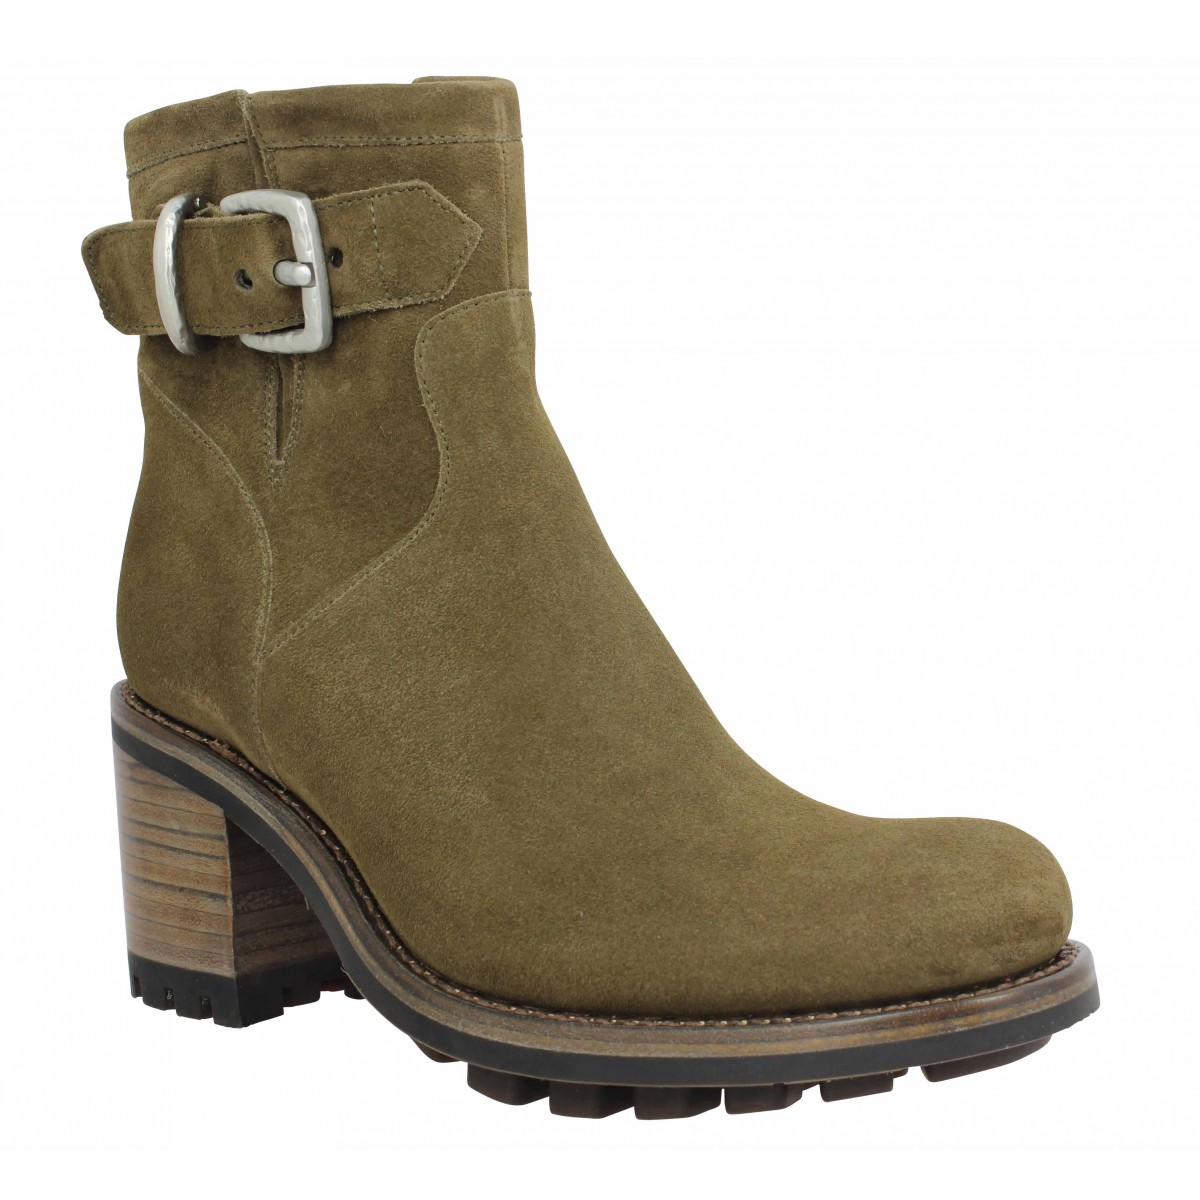 Bottes FREE LANCE Justy 7 Small Gero Buckle velours Femme Army